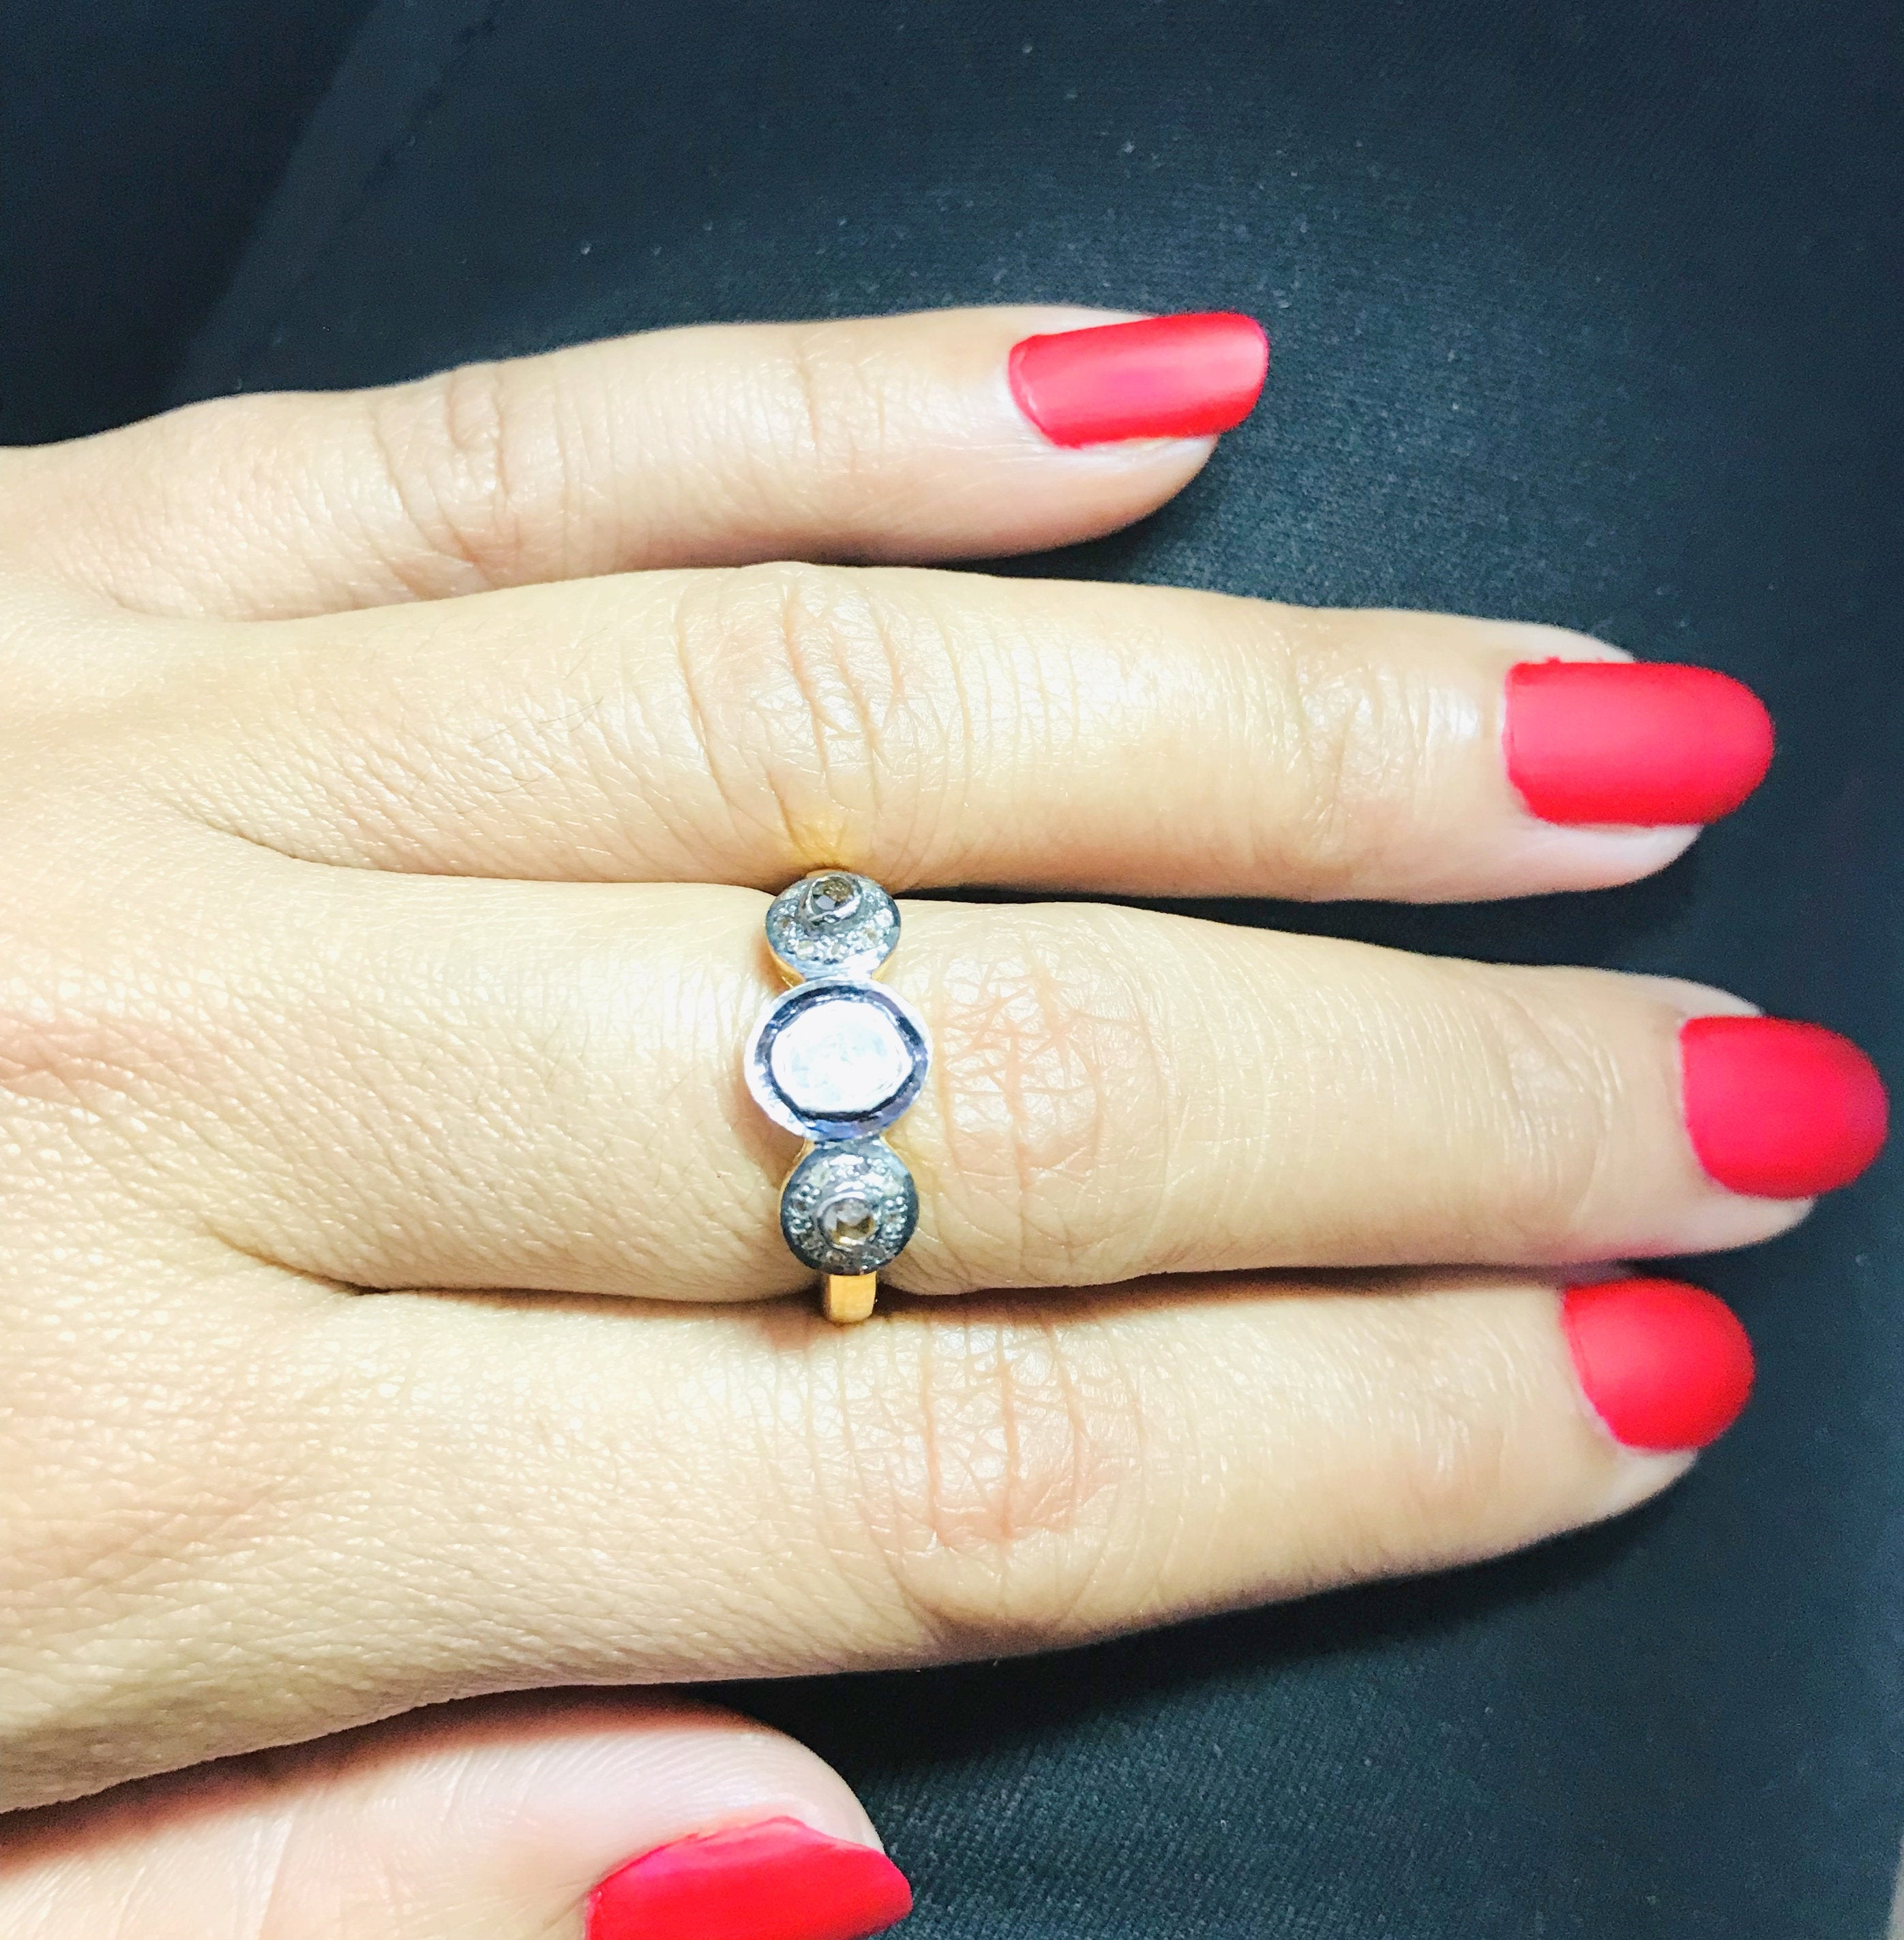 925 Sterling Silver Handmade Jewelry Polki Diamond Ring Gift For Her Sapphire Gemstone Ring Birthday Gift Ring woman Jewelry Ring